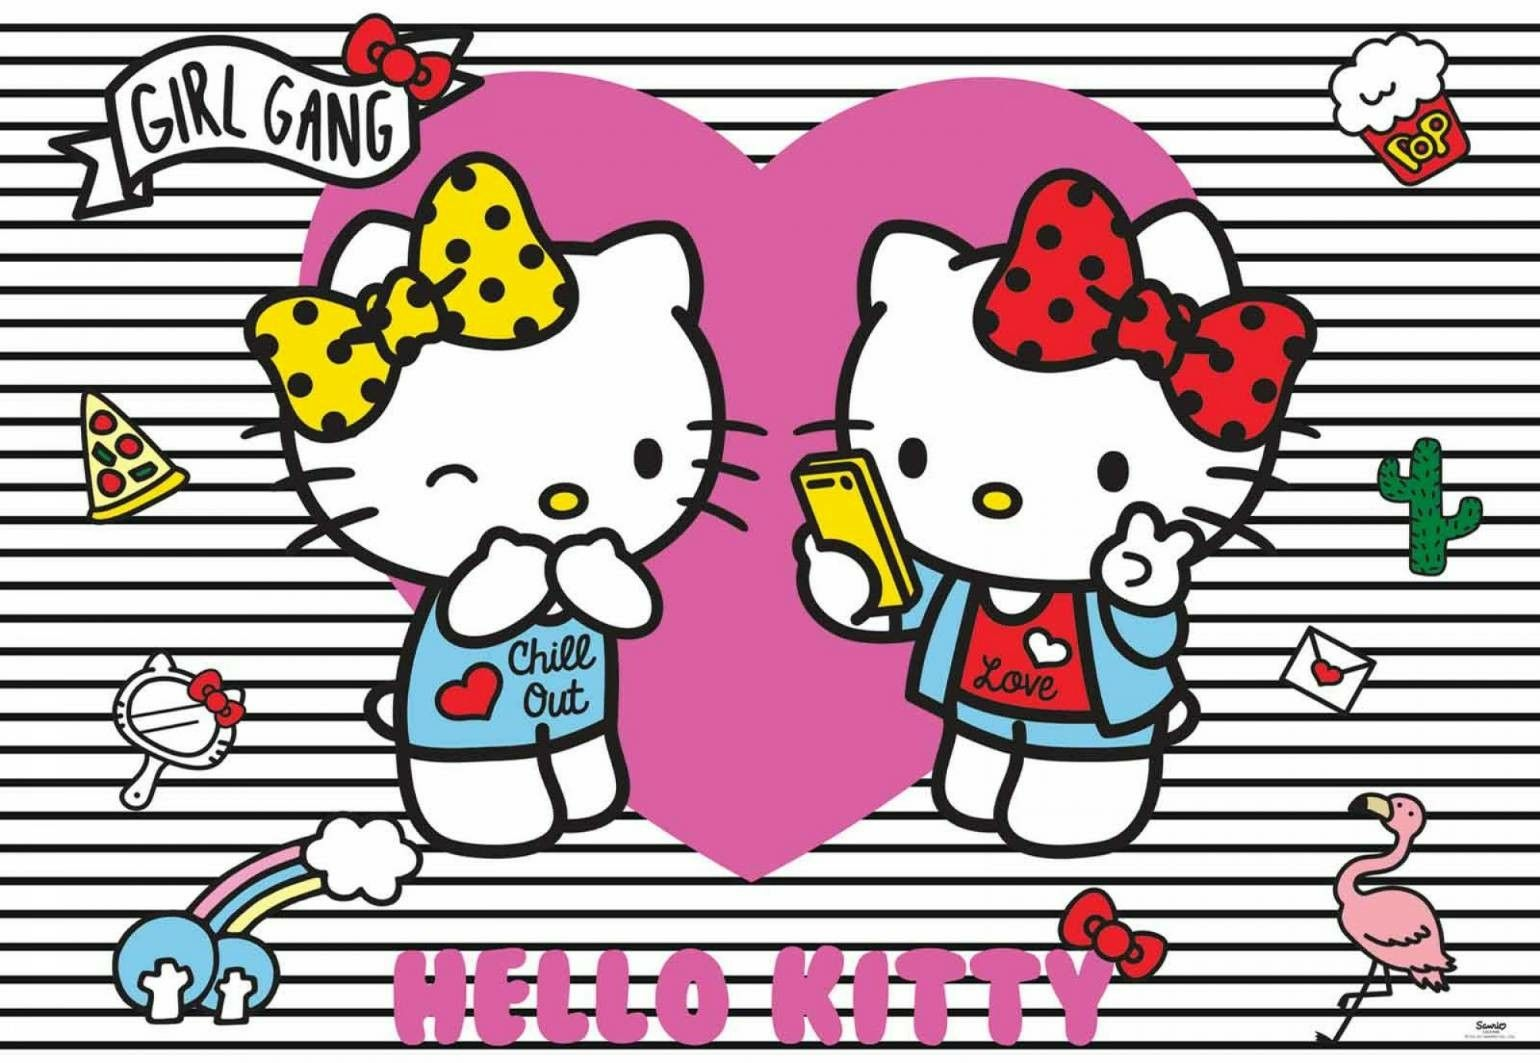 Good Wallpaper Hello Kitty Painting - 0a95cd4bf7e1ad8684cc0ad9c055398e  You Should Have_336550.jpg